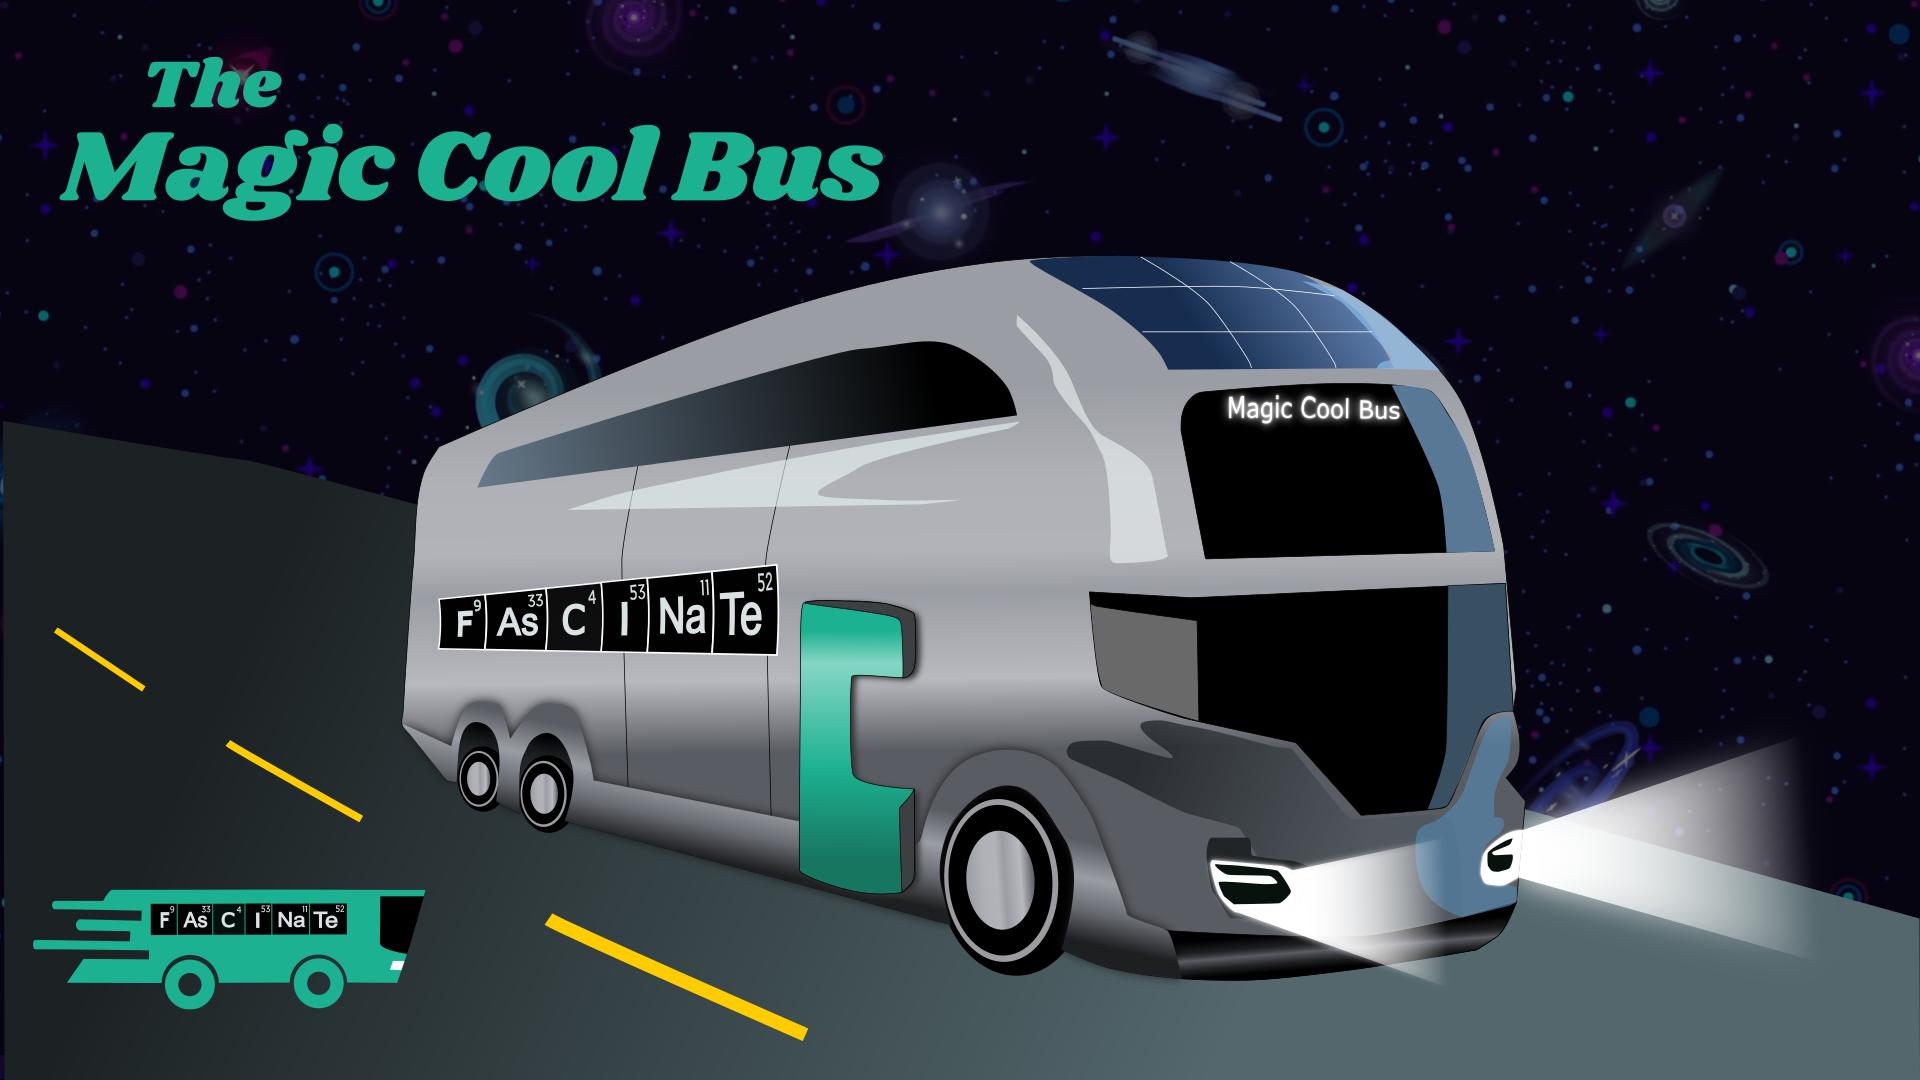 The Magic Cool Bus - A 501 (c)(3) non-profit project that brings a mobile museum with culturally responsive STEM curriculum to students in NYC.